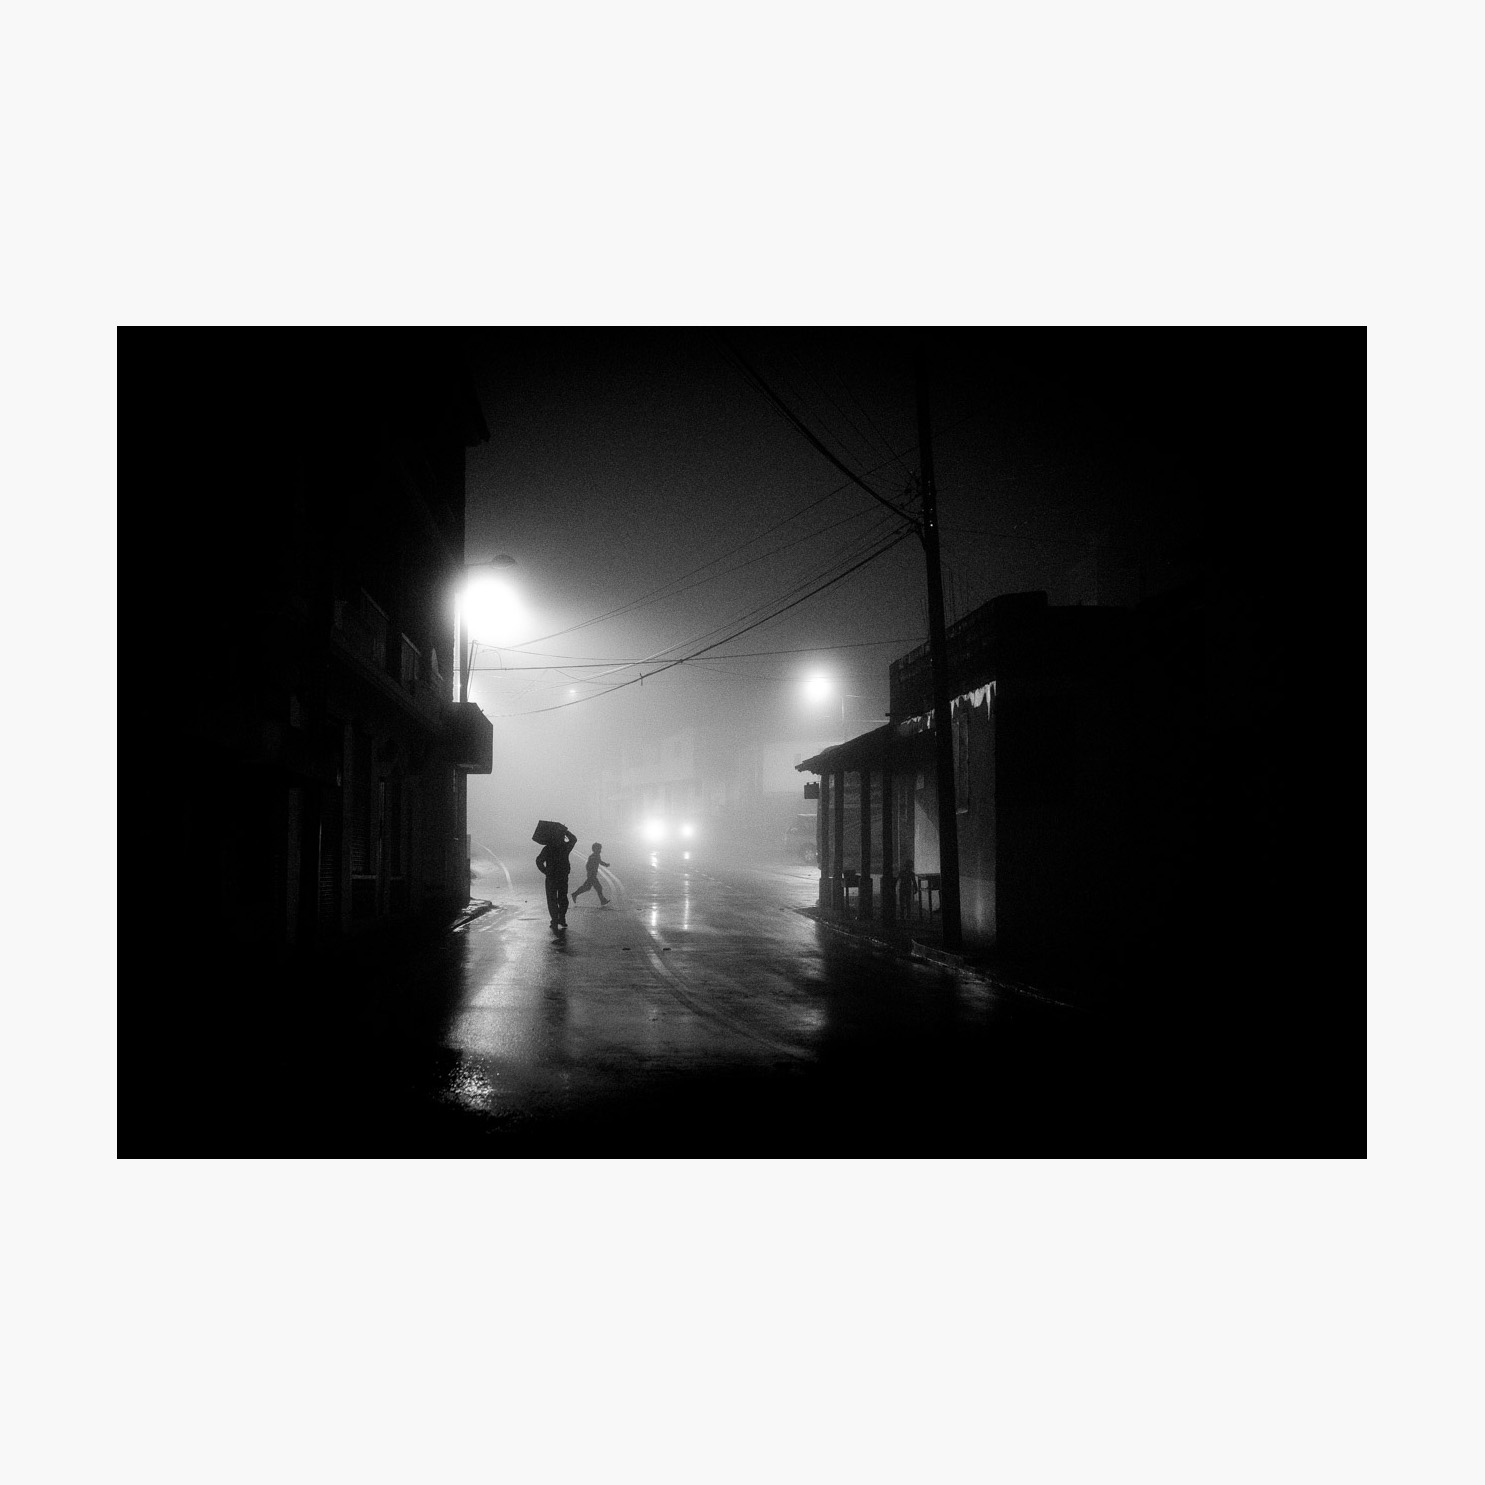 @harrywedmonds  Chugchilán, Ecuador, South America January 2018  The last in my selection was captured after a very long day hiking the Quilotoa Loop. In the pouring rain. All I really wanted was a hot shower, a plate of food, and some much needed sleep. But the fog shrouding the town of Chugchilán was too enticing.  Although ominous in tone, the child in full sprint with both feet off the ground brings a wonderful touch of joy to this photograph. There's also a third figure to be found in the scene, lurking in the shadows.  Photographed using the  FujiFilm X-T2  and the  XF35 F2 WR .